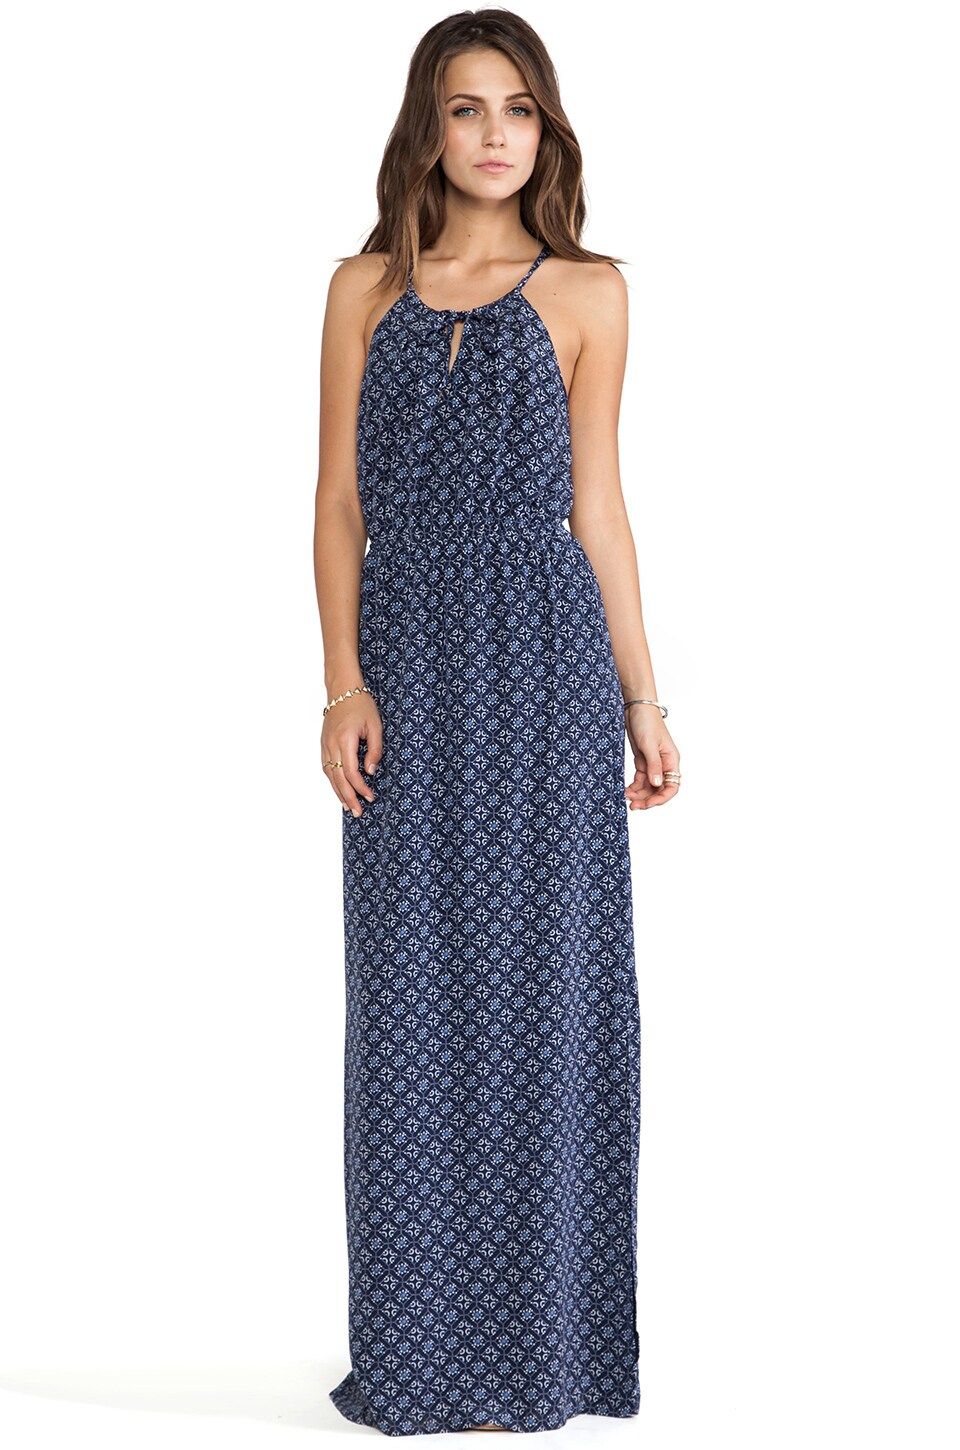 Joie Amaretta Maxi Dress in Dark Navy